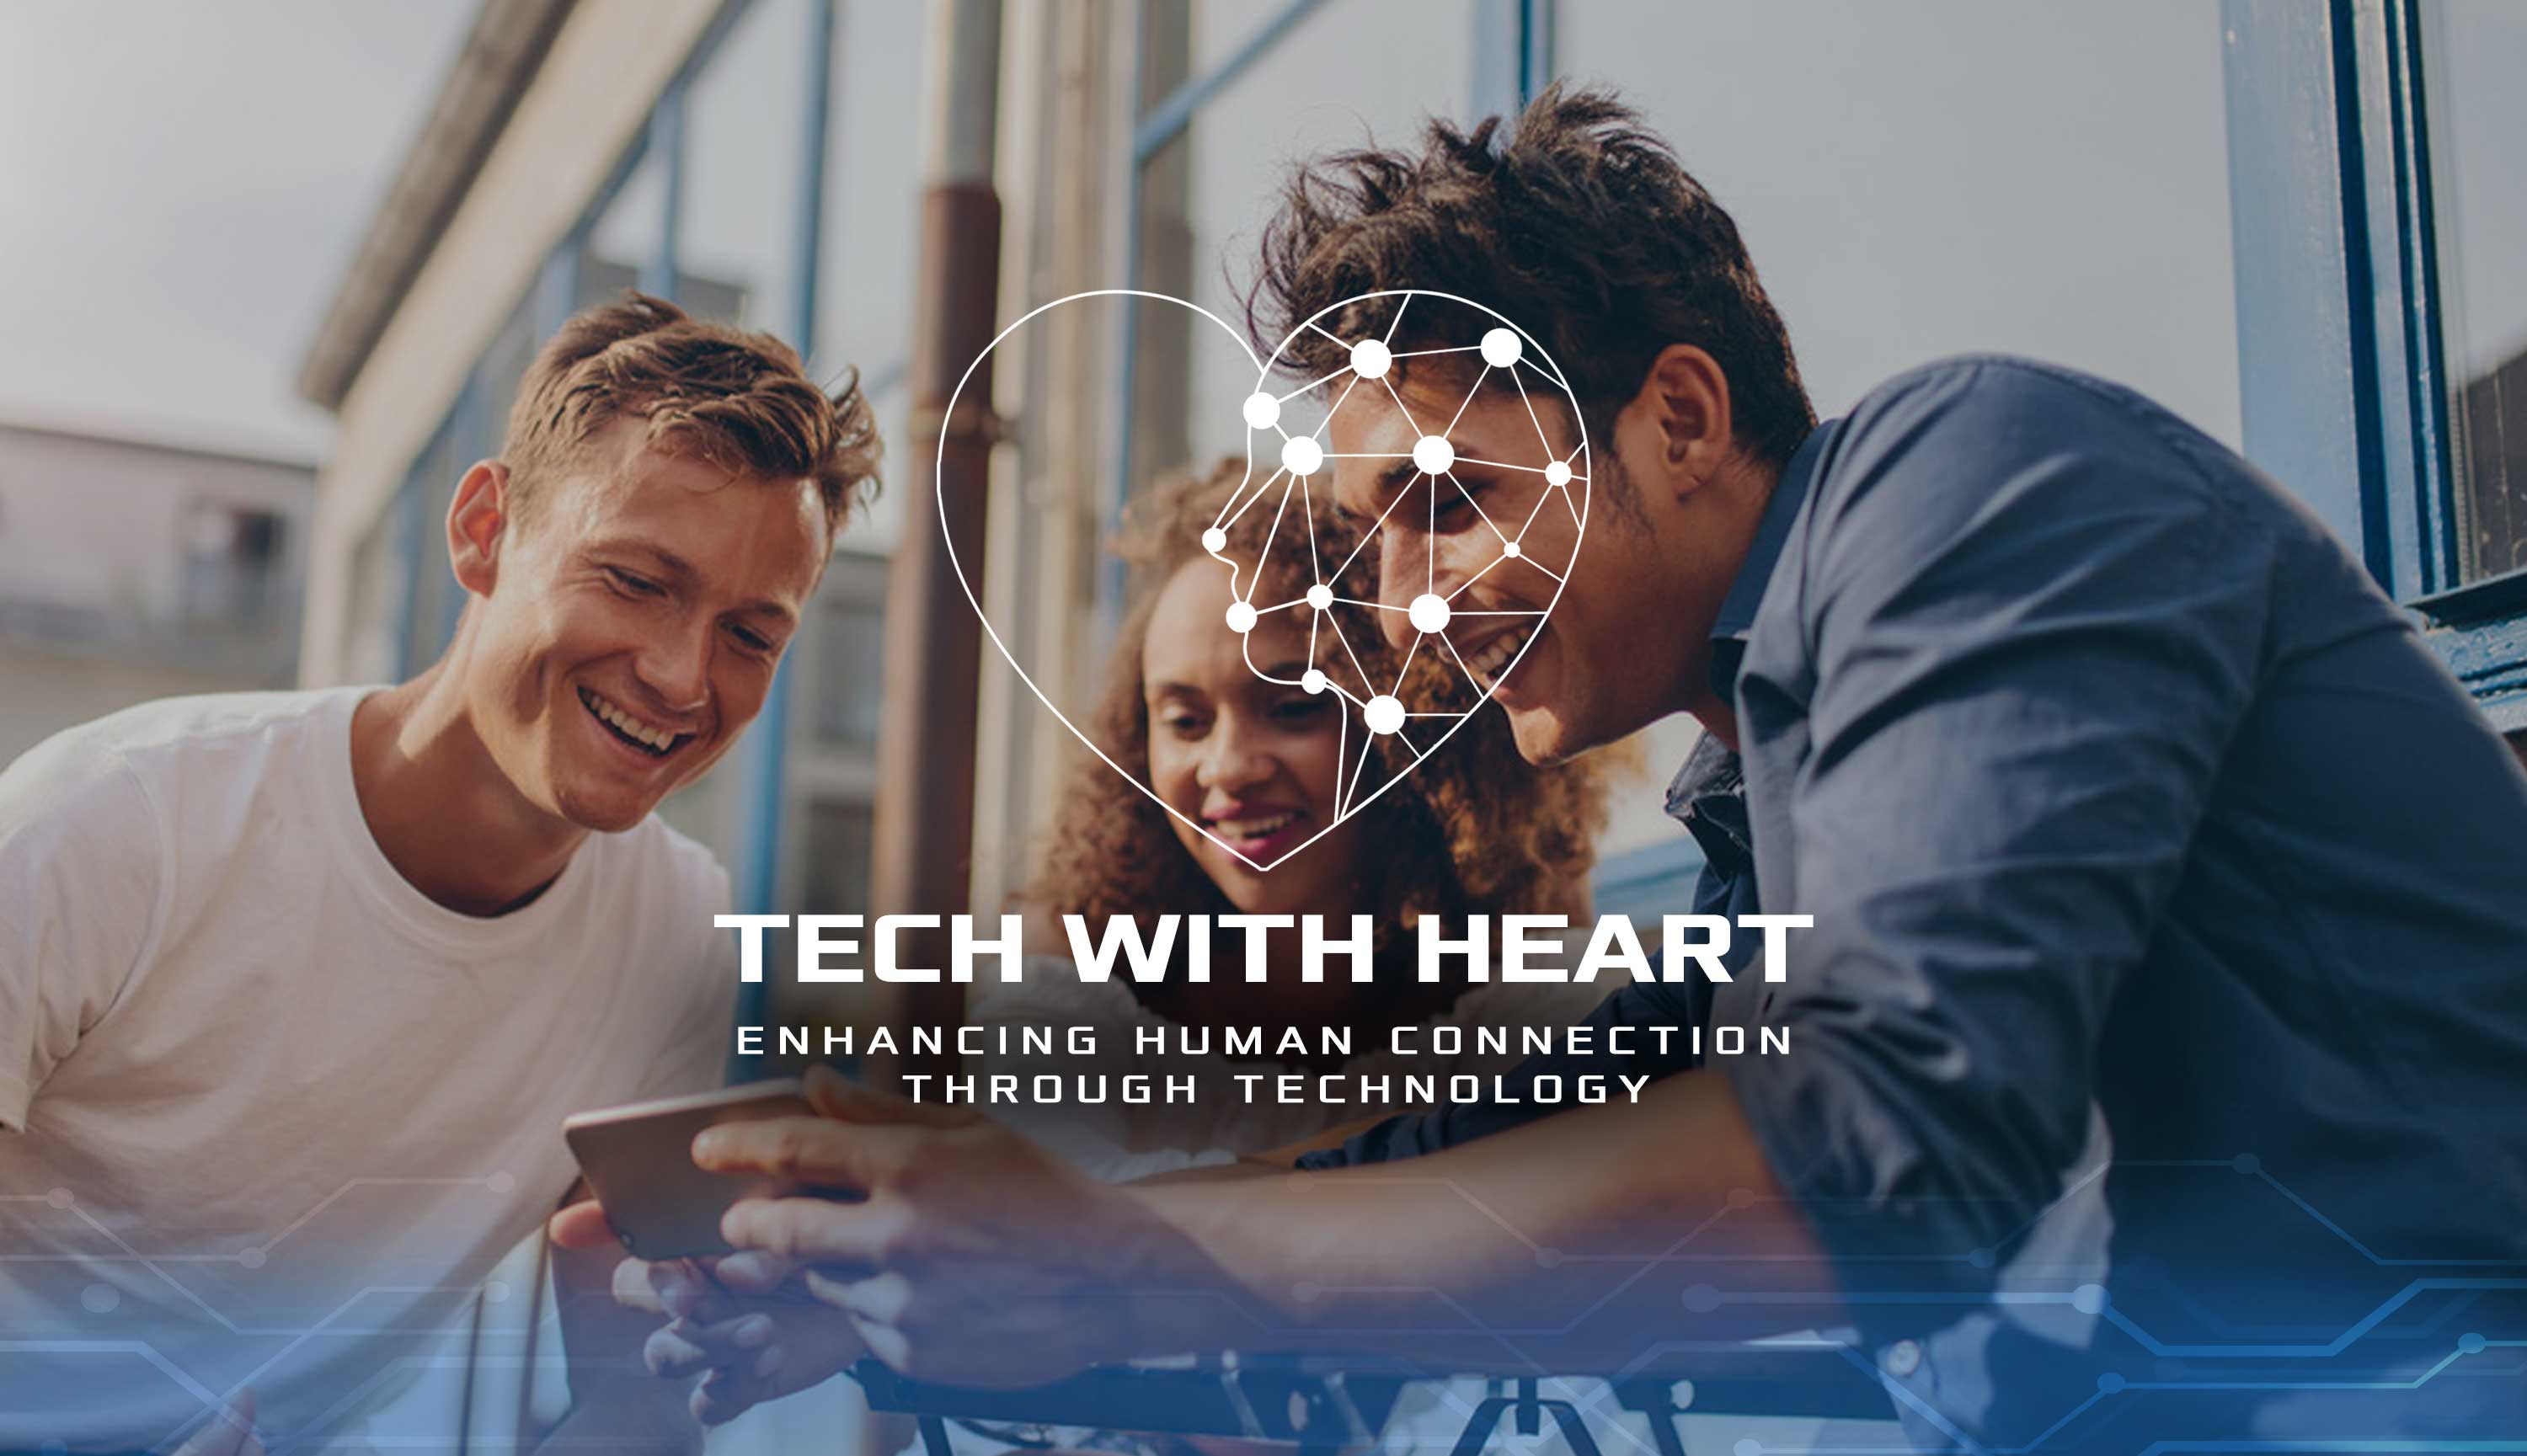 Tech With Heart Background